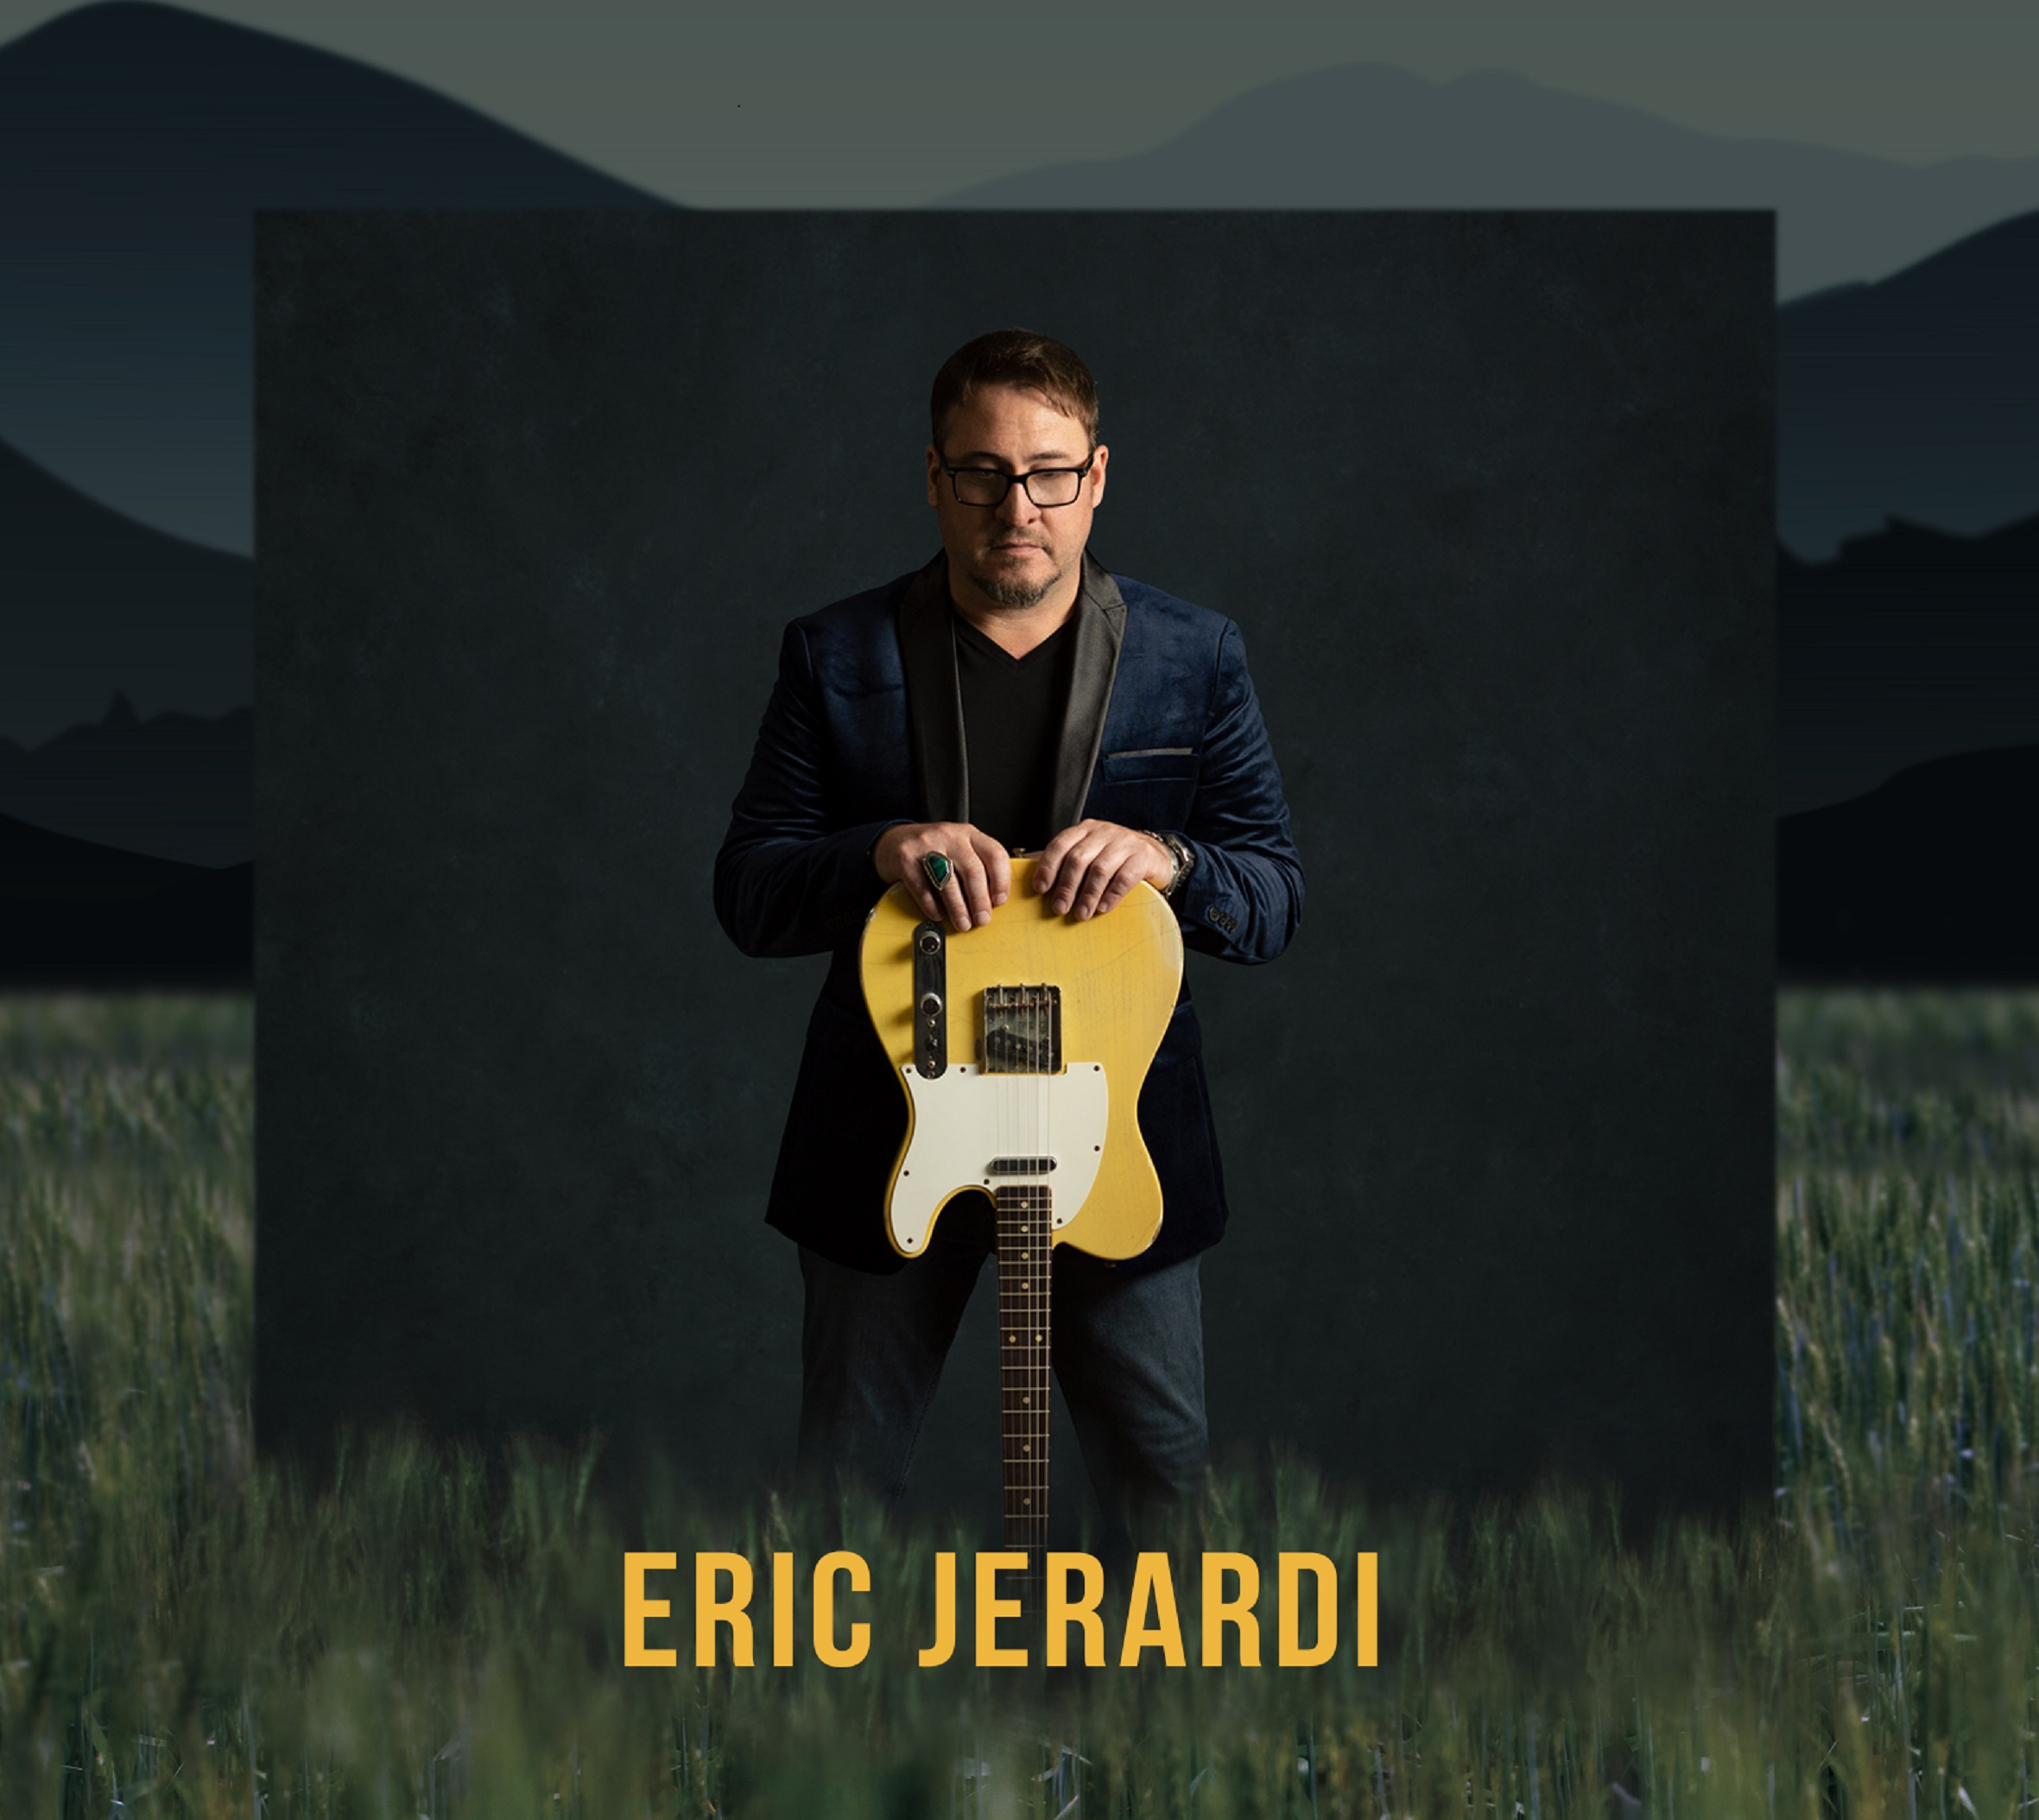 Eric Jerardi Delivers Muscle Shoals Sound Soul-Blues on New Album